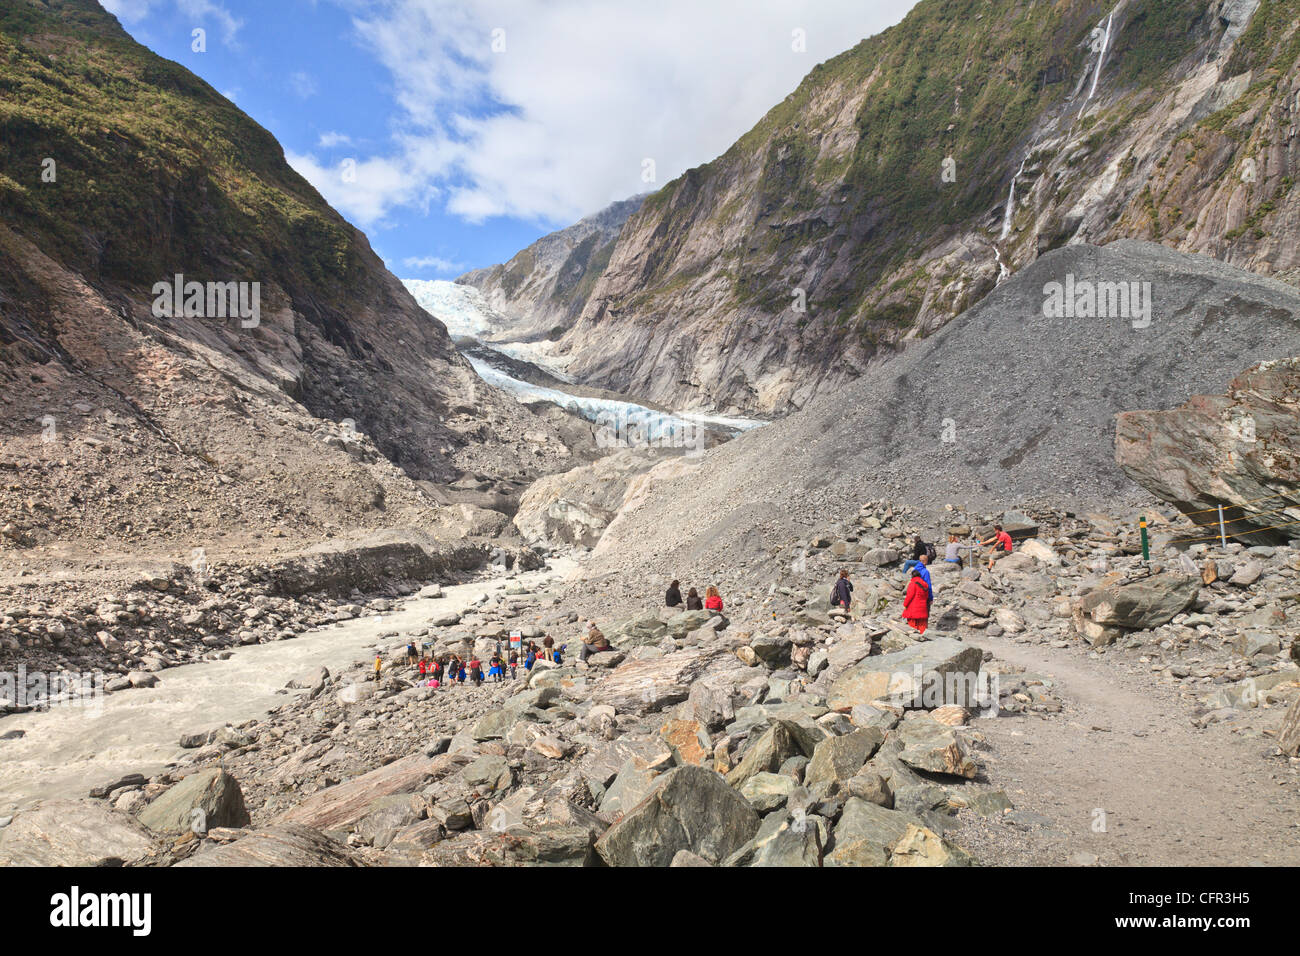 Tourists near the terminal of Franz Josef Glacier, West Coast, New Zealand - Stock Image